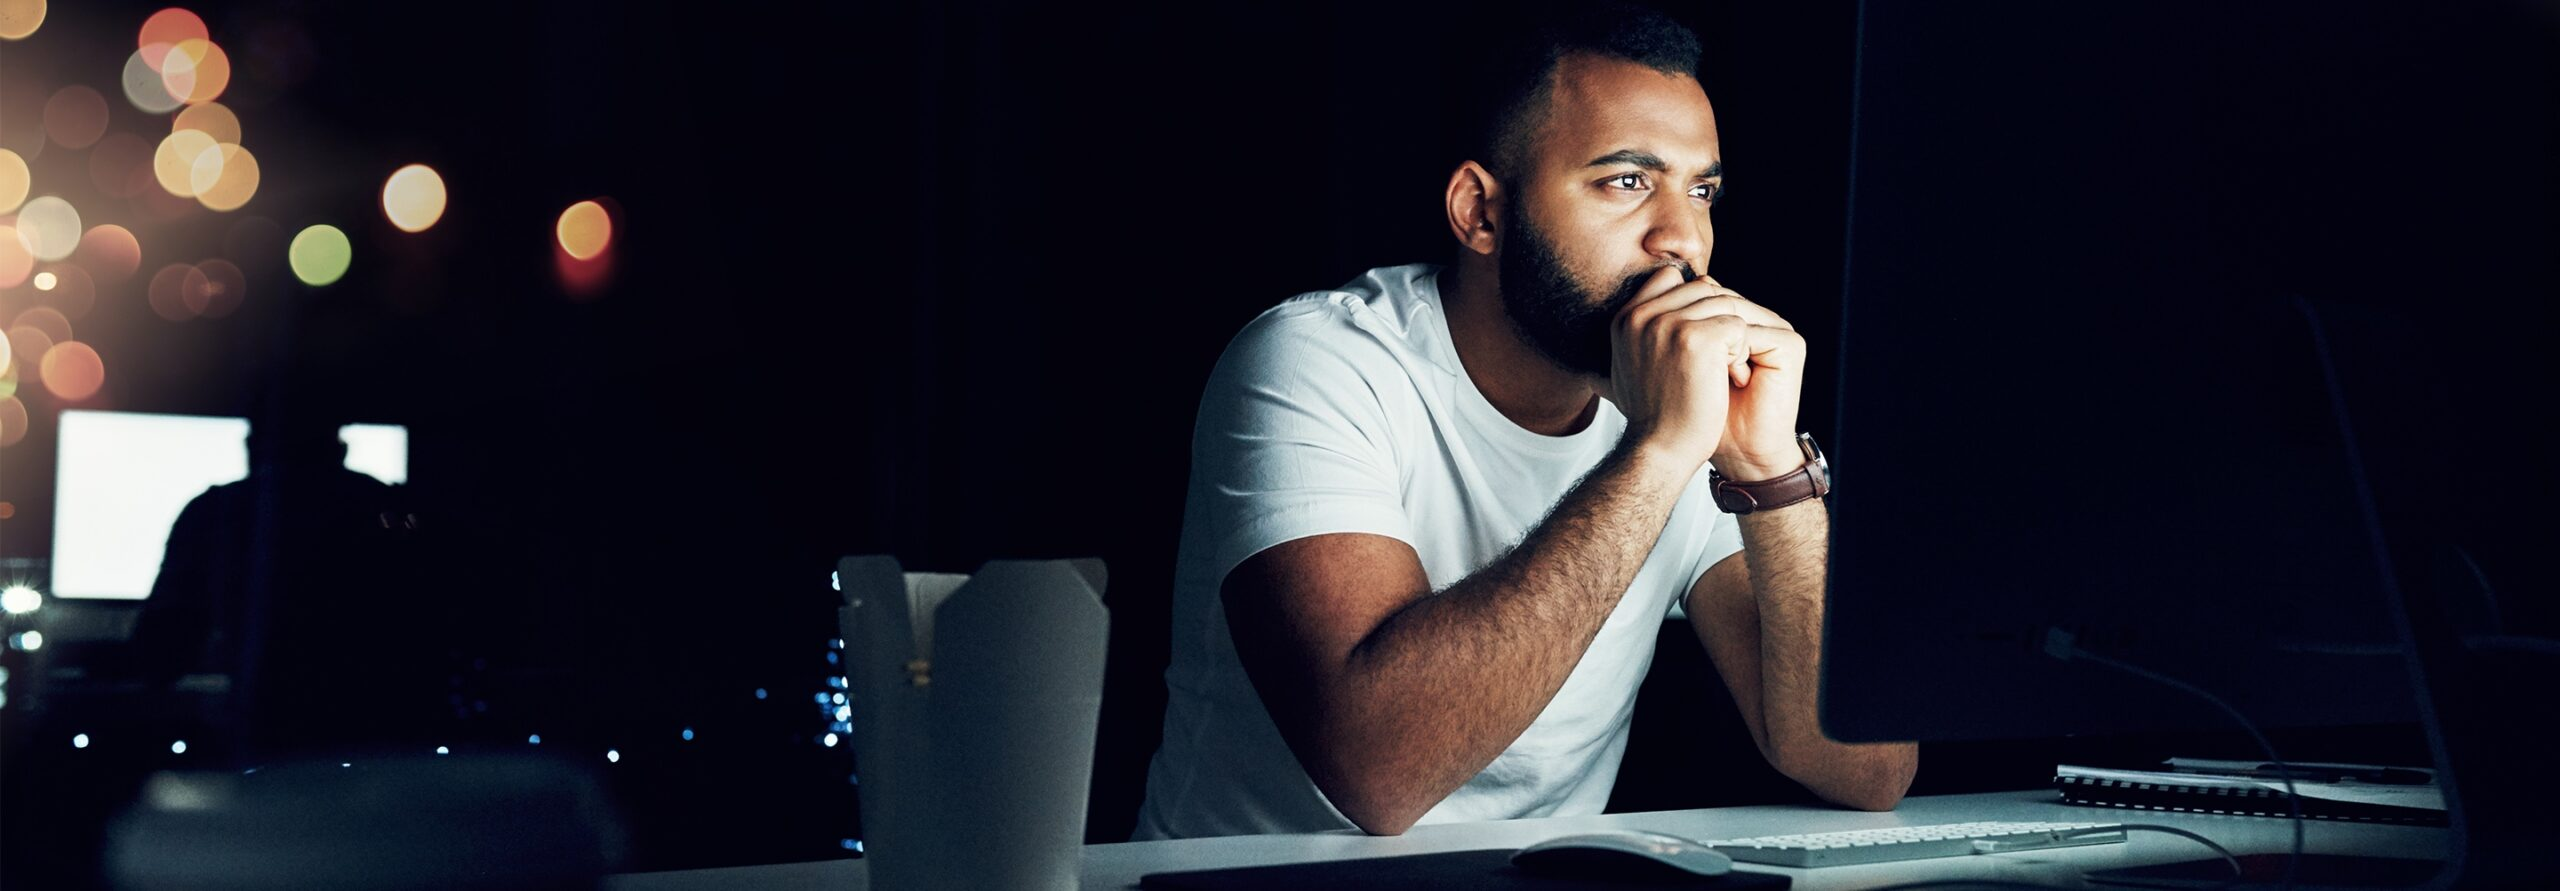 man in white shirt looking intently at computer screen in dark room